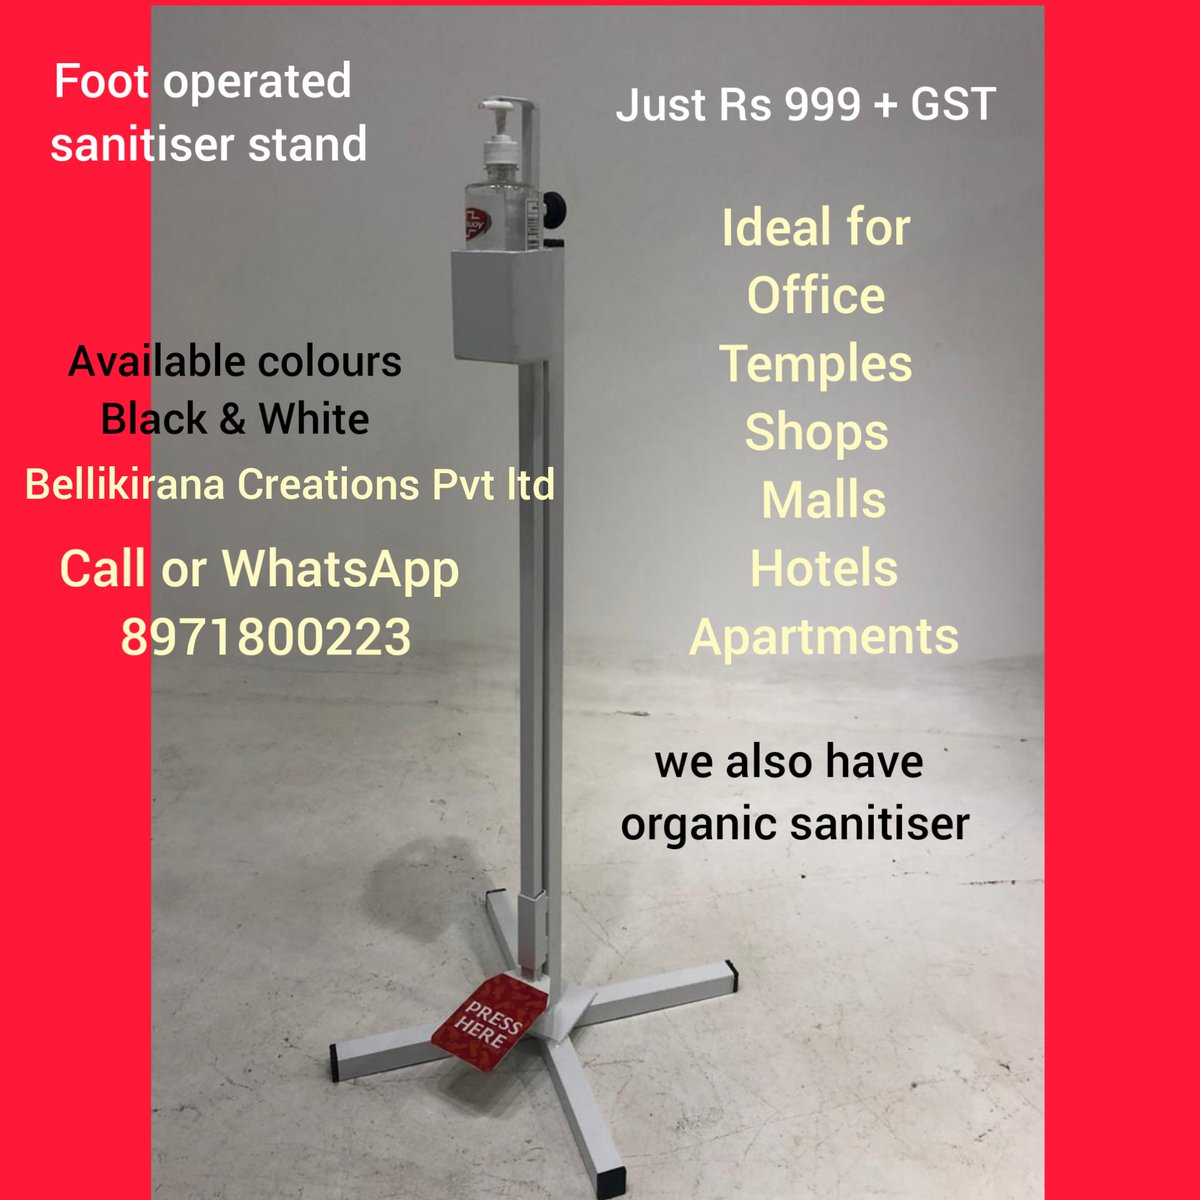 It's just Rs 999 for foot operated sanitiser stand Call 7259925112 or WhatsApp 8971800223